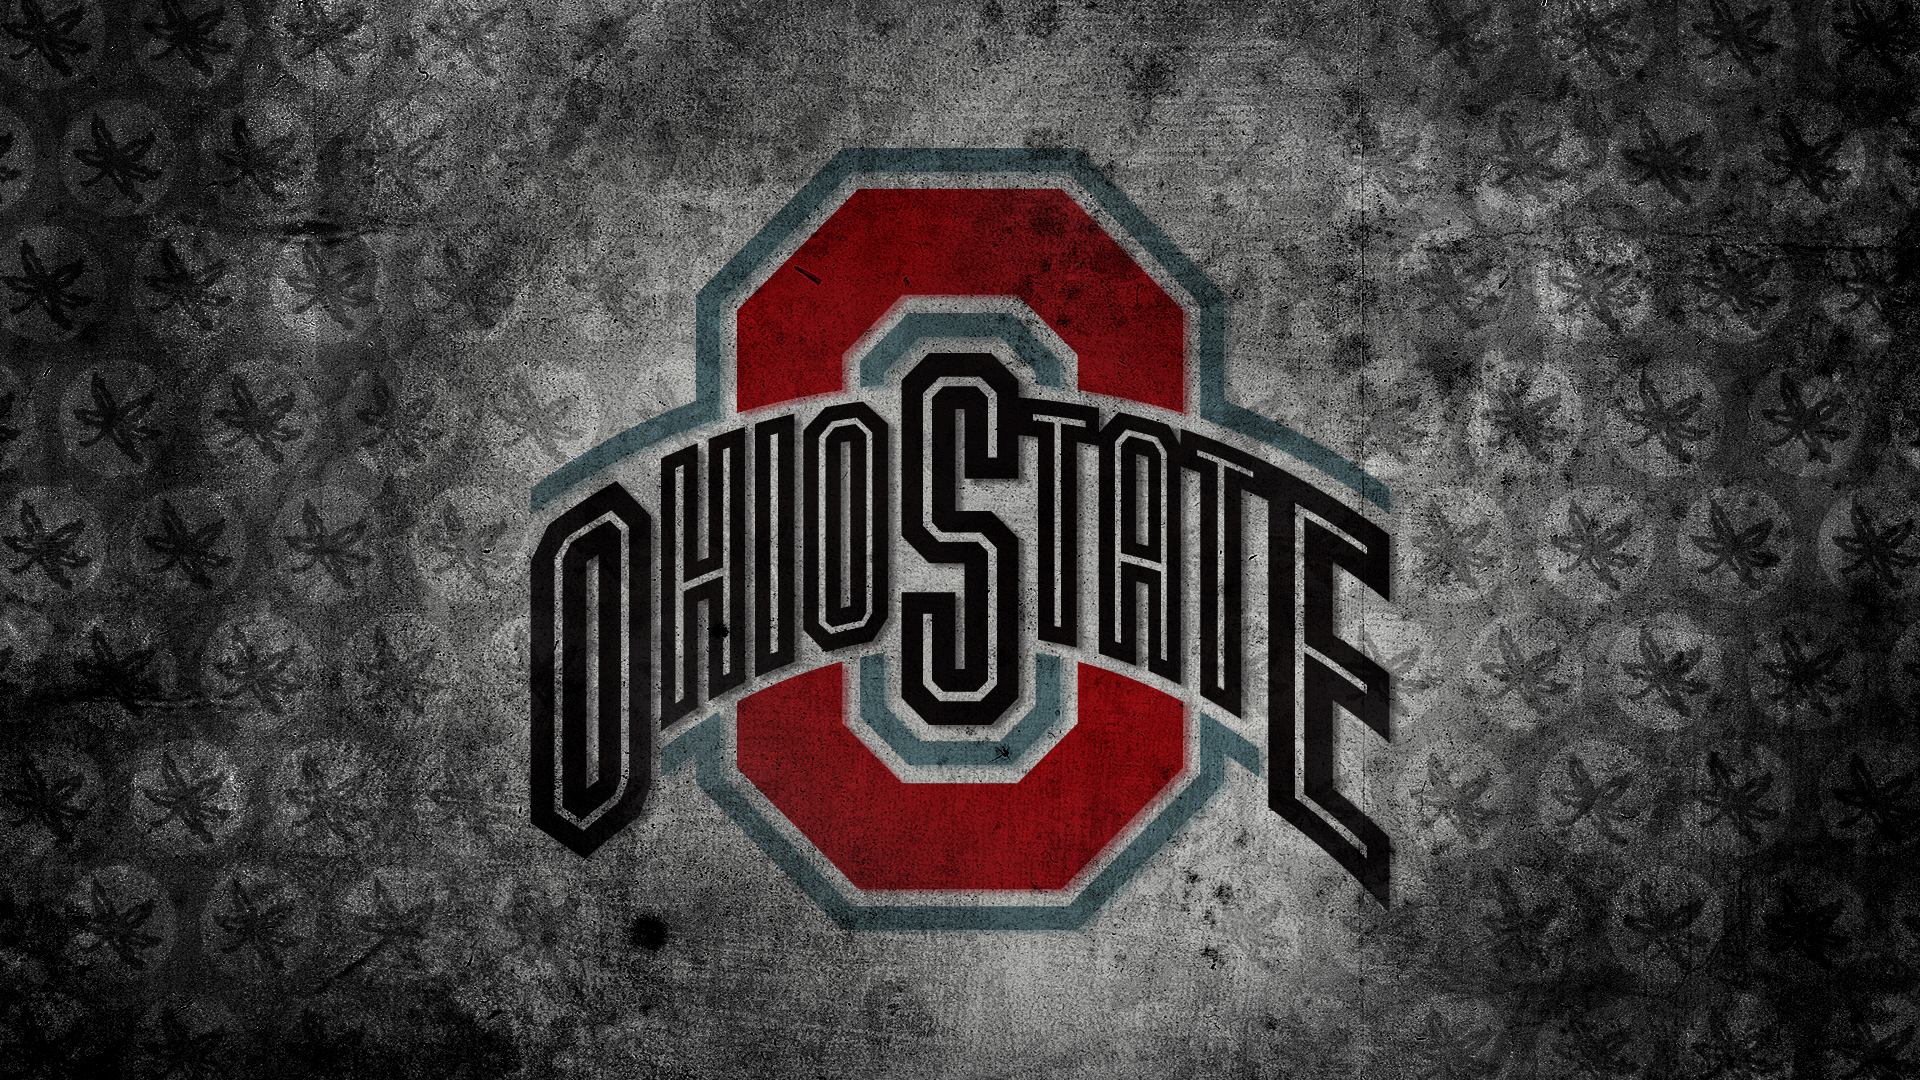 Ohio State Football Helmet Wallpaper Images amp Pictures   Becuo 1920x1080